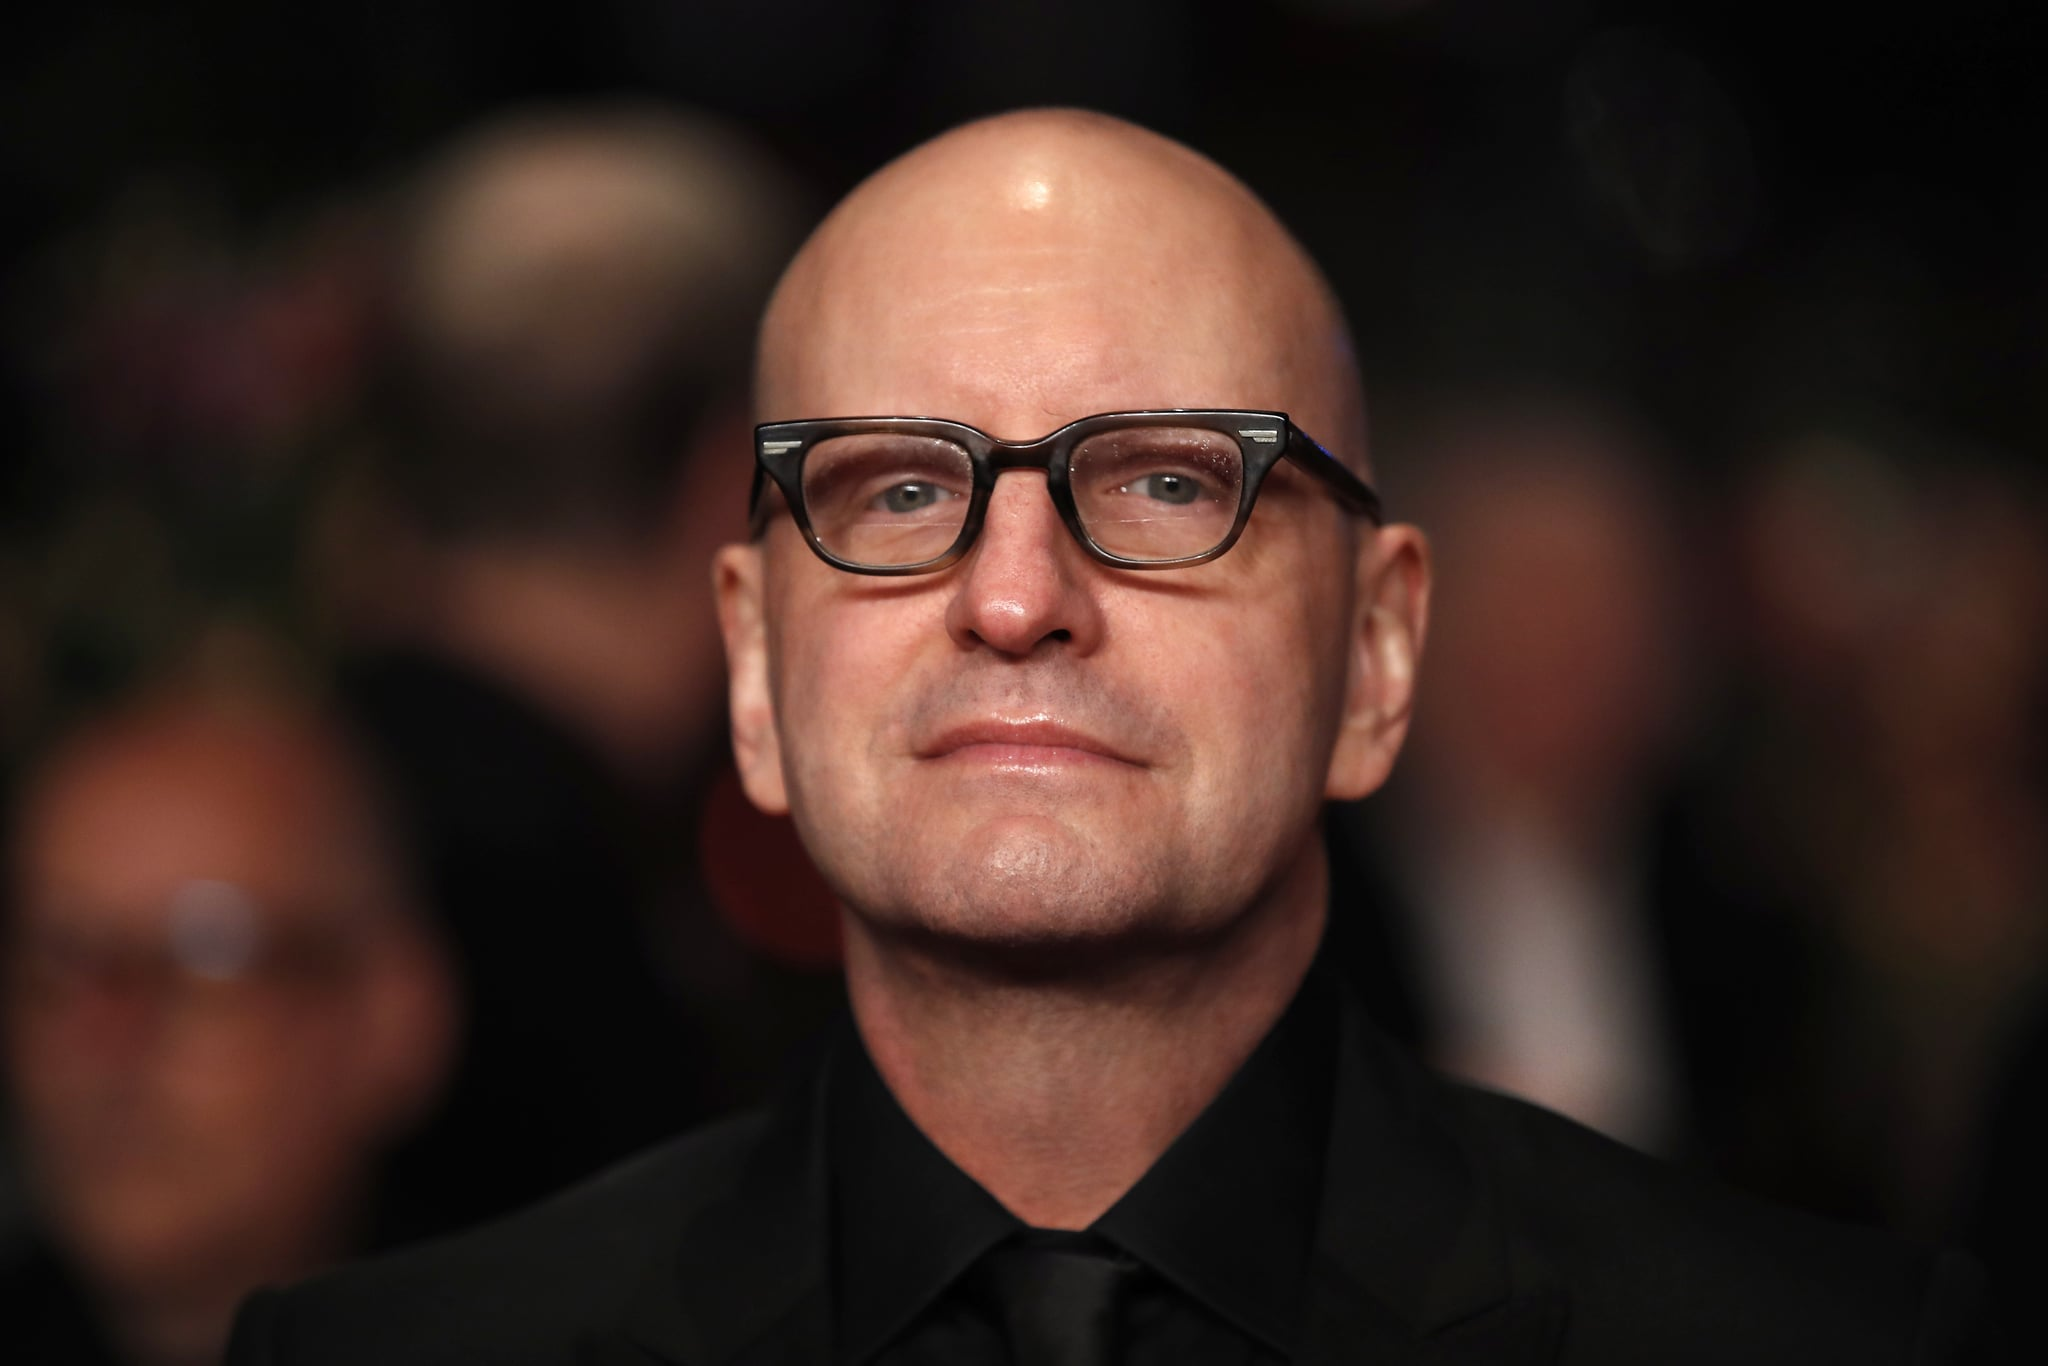 BERLIN, GERMANY - FEBRUARY 21: Steven Soderbergh attends the 'Unsane' premiere during the 68th Berlinale International Film Festival Berlin at Berlinale Palast on February 21, 2018 in Berlin, Germany. (Photo by Franziska Krug/Getty Images)